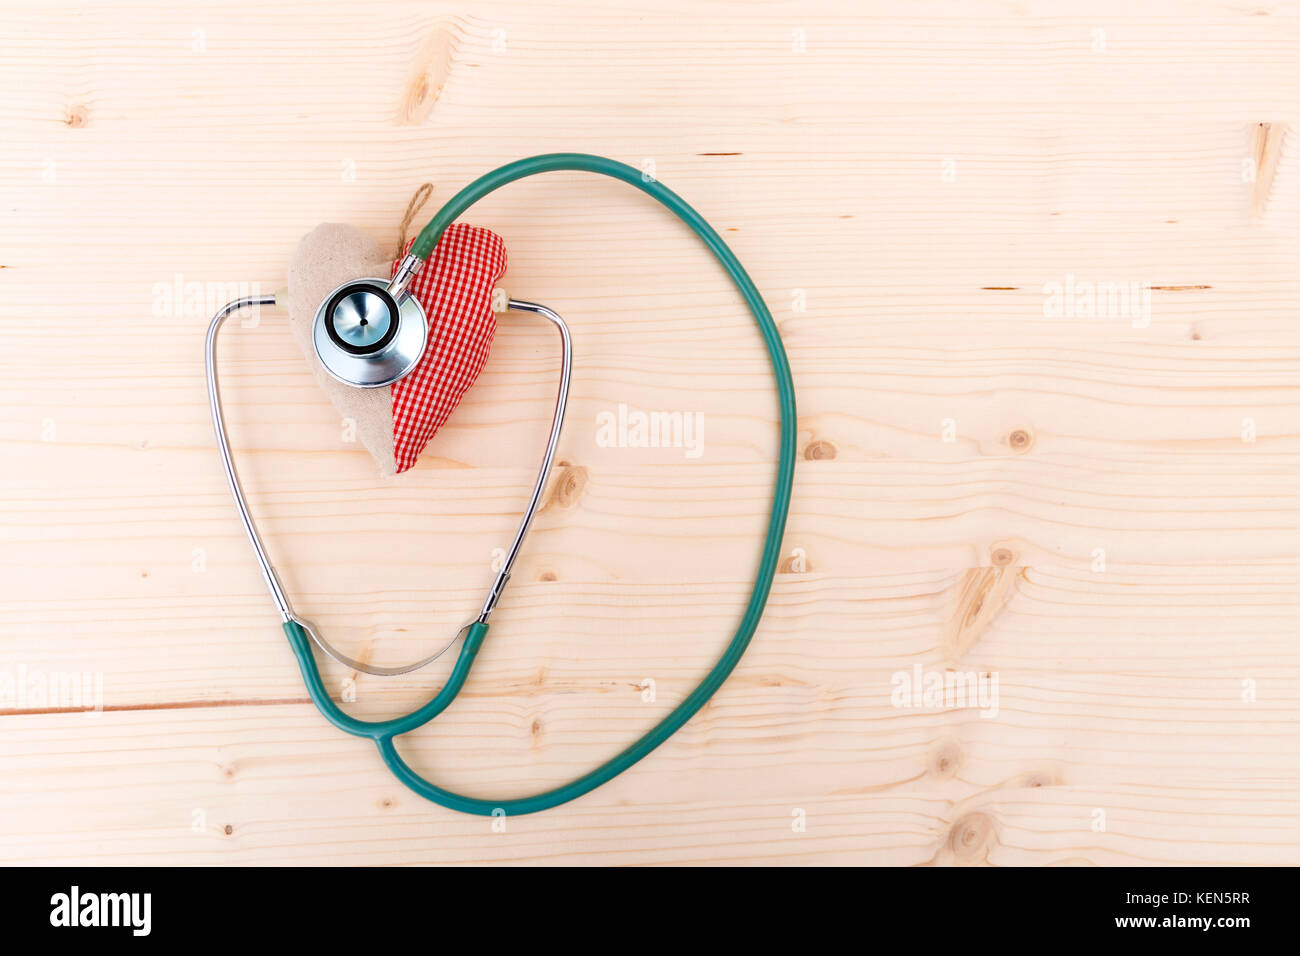 Stethoscope and red fabric heart lying on wooden table. Healthcare, cardiology and medical concept - Stock Image